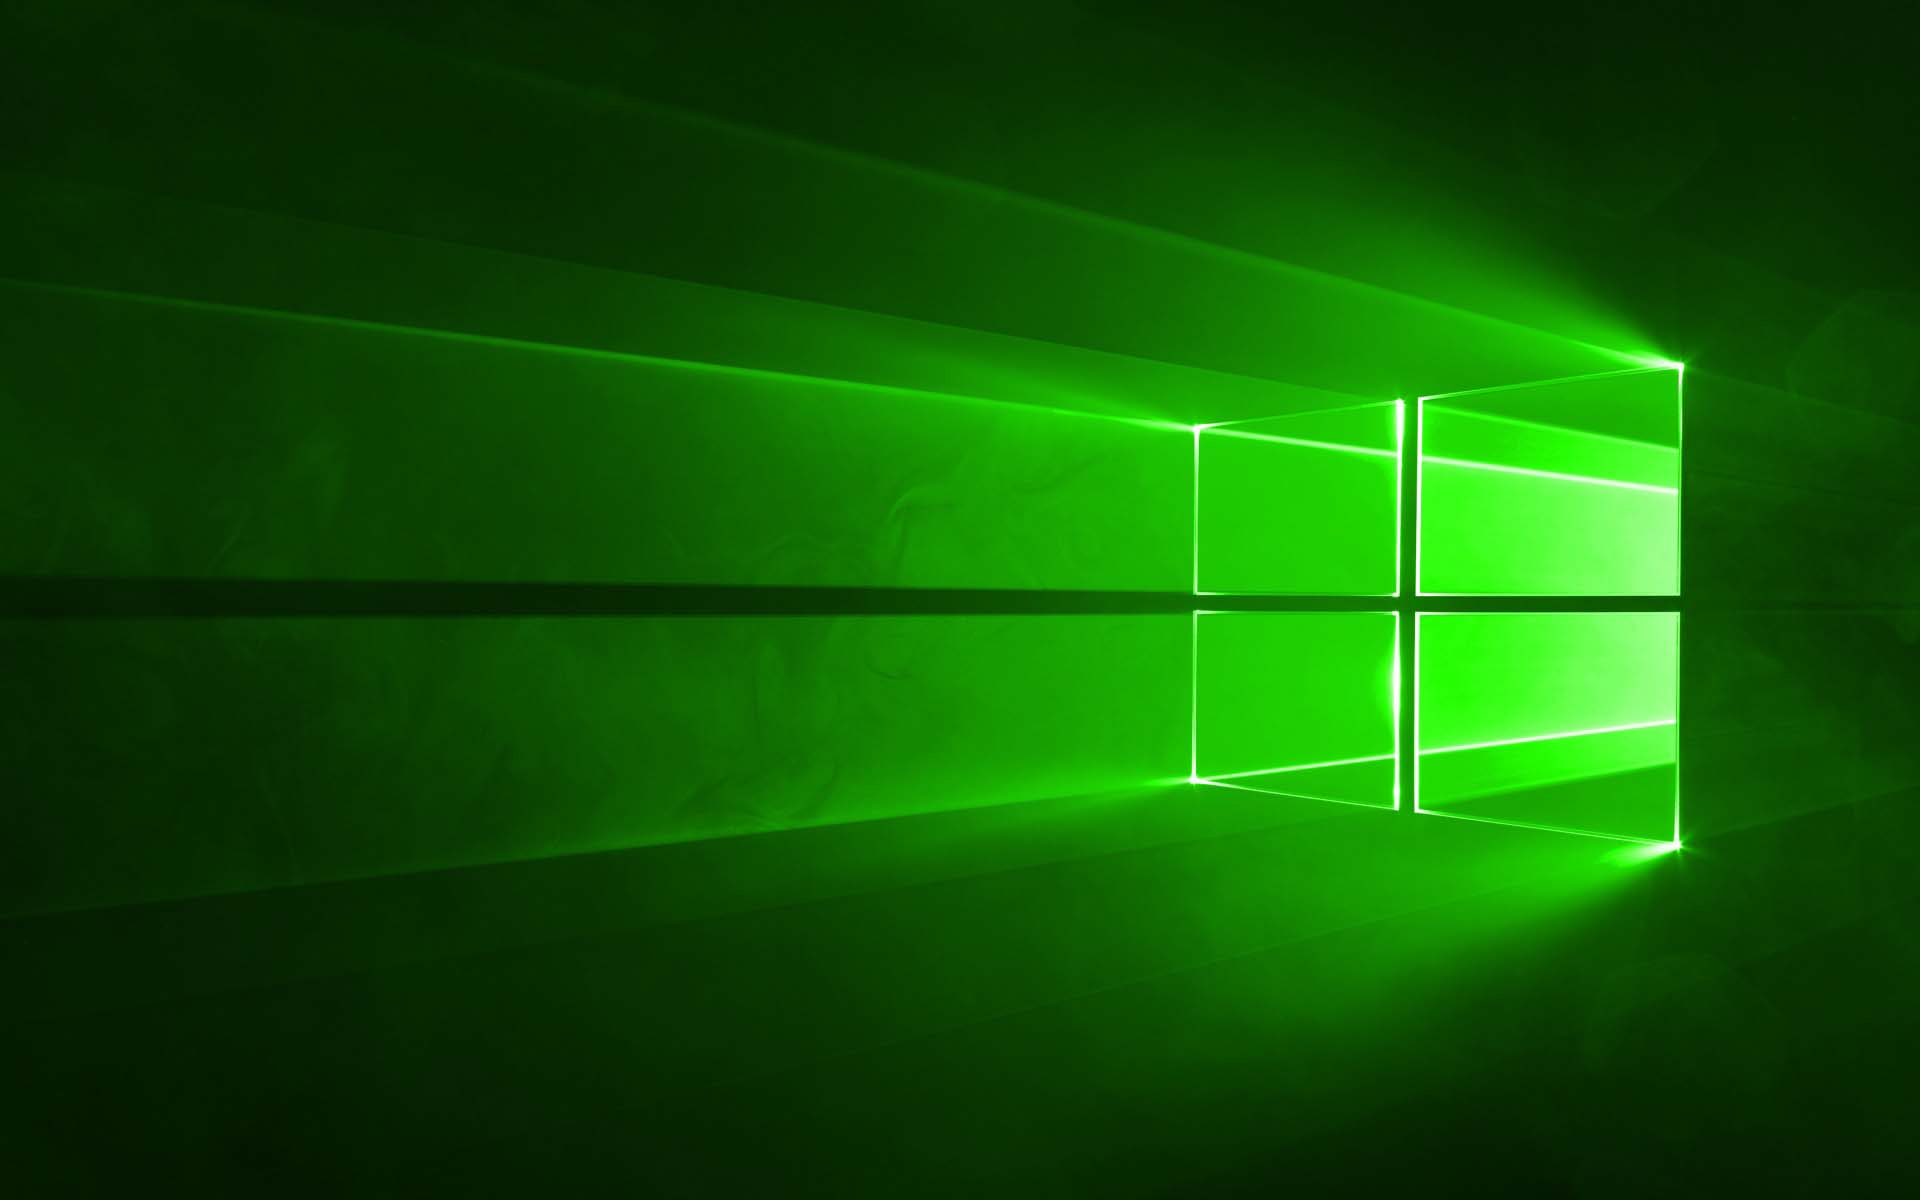 Green windows 10 wallpaper